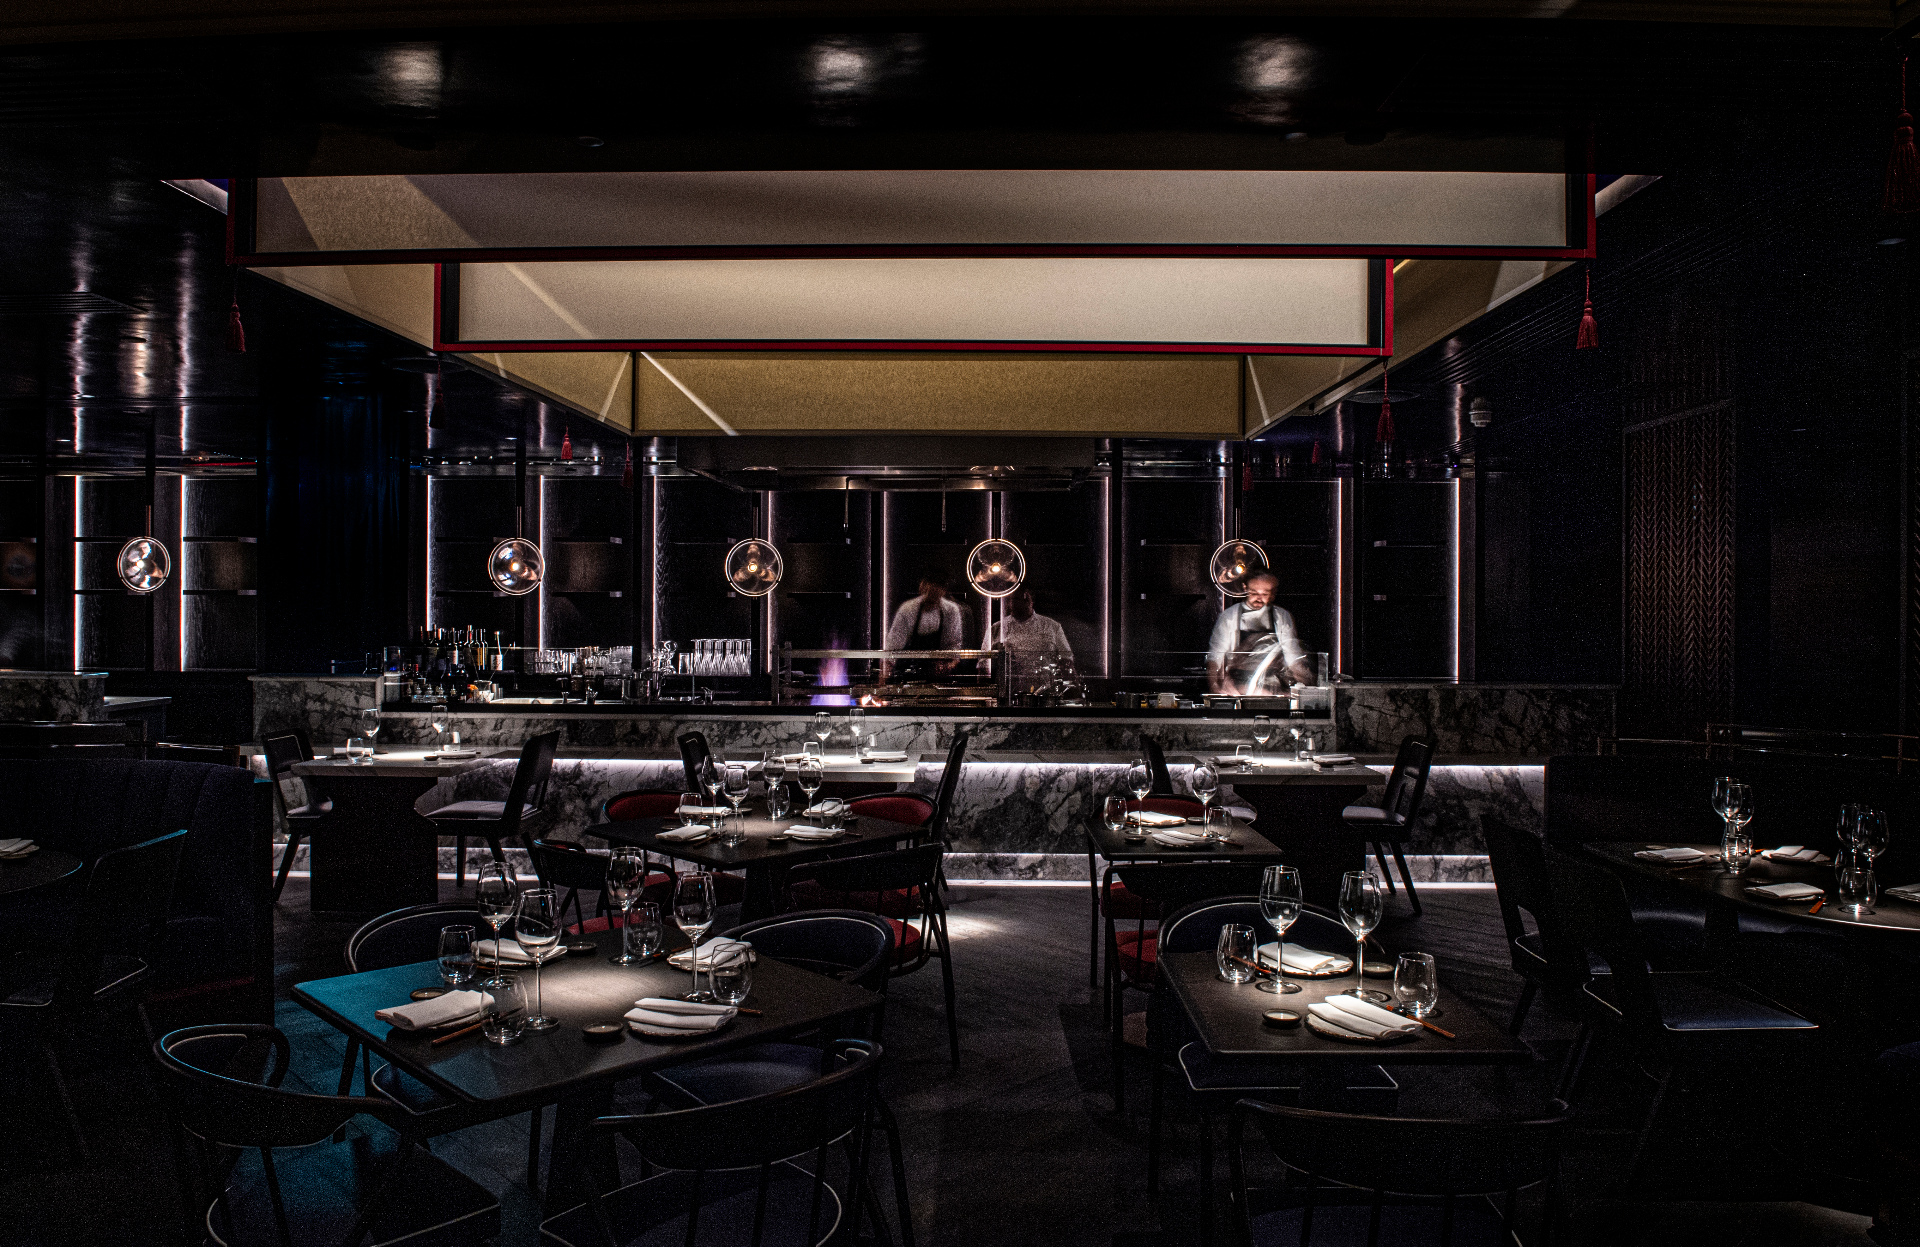 Robert Angell creates stunning new interiors for aqua kyoto